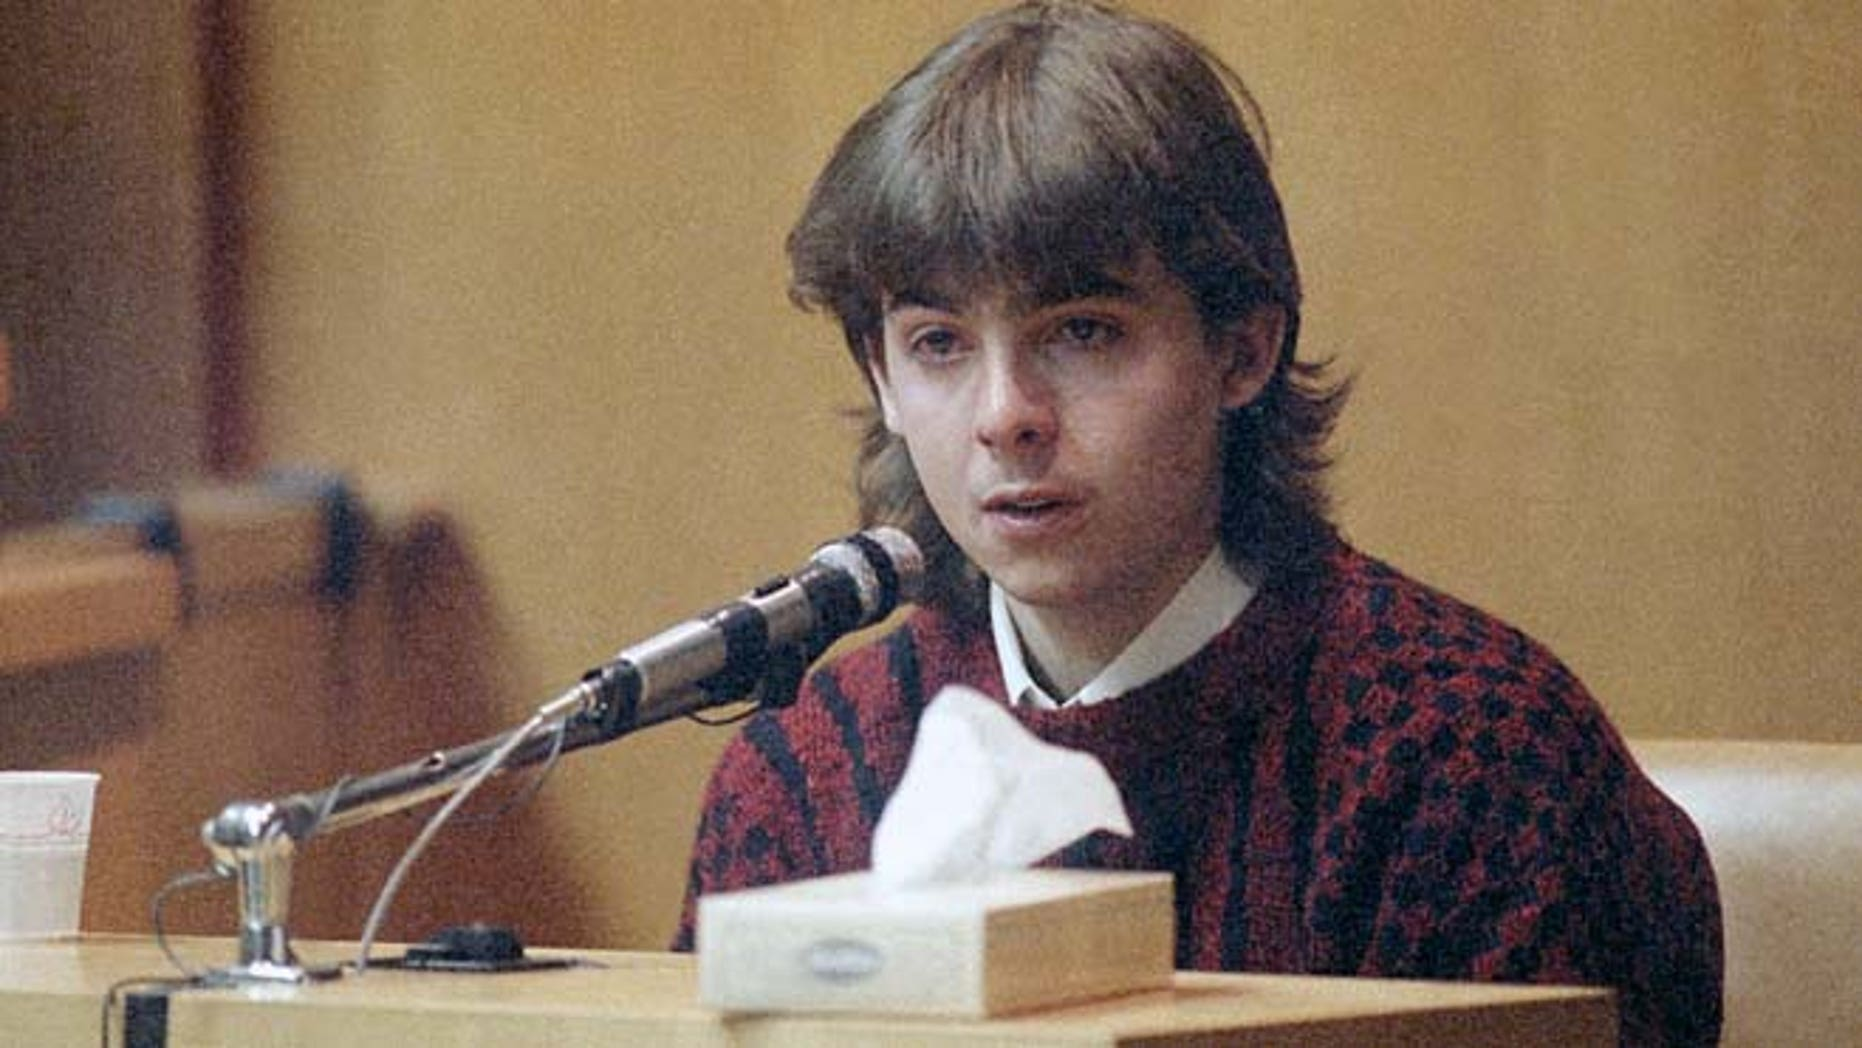 In this March 13, 1991 file photo, William Flynn, testifies on his 17th birthday how he shot Gregory Smart in the head and killed him, in court in Exeter, N.H.